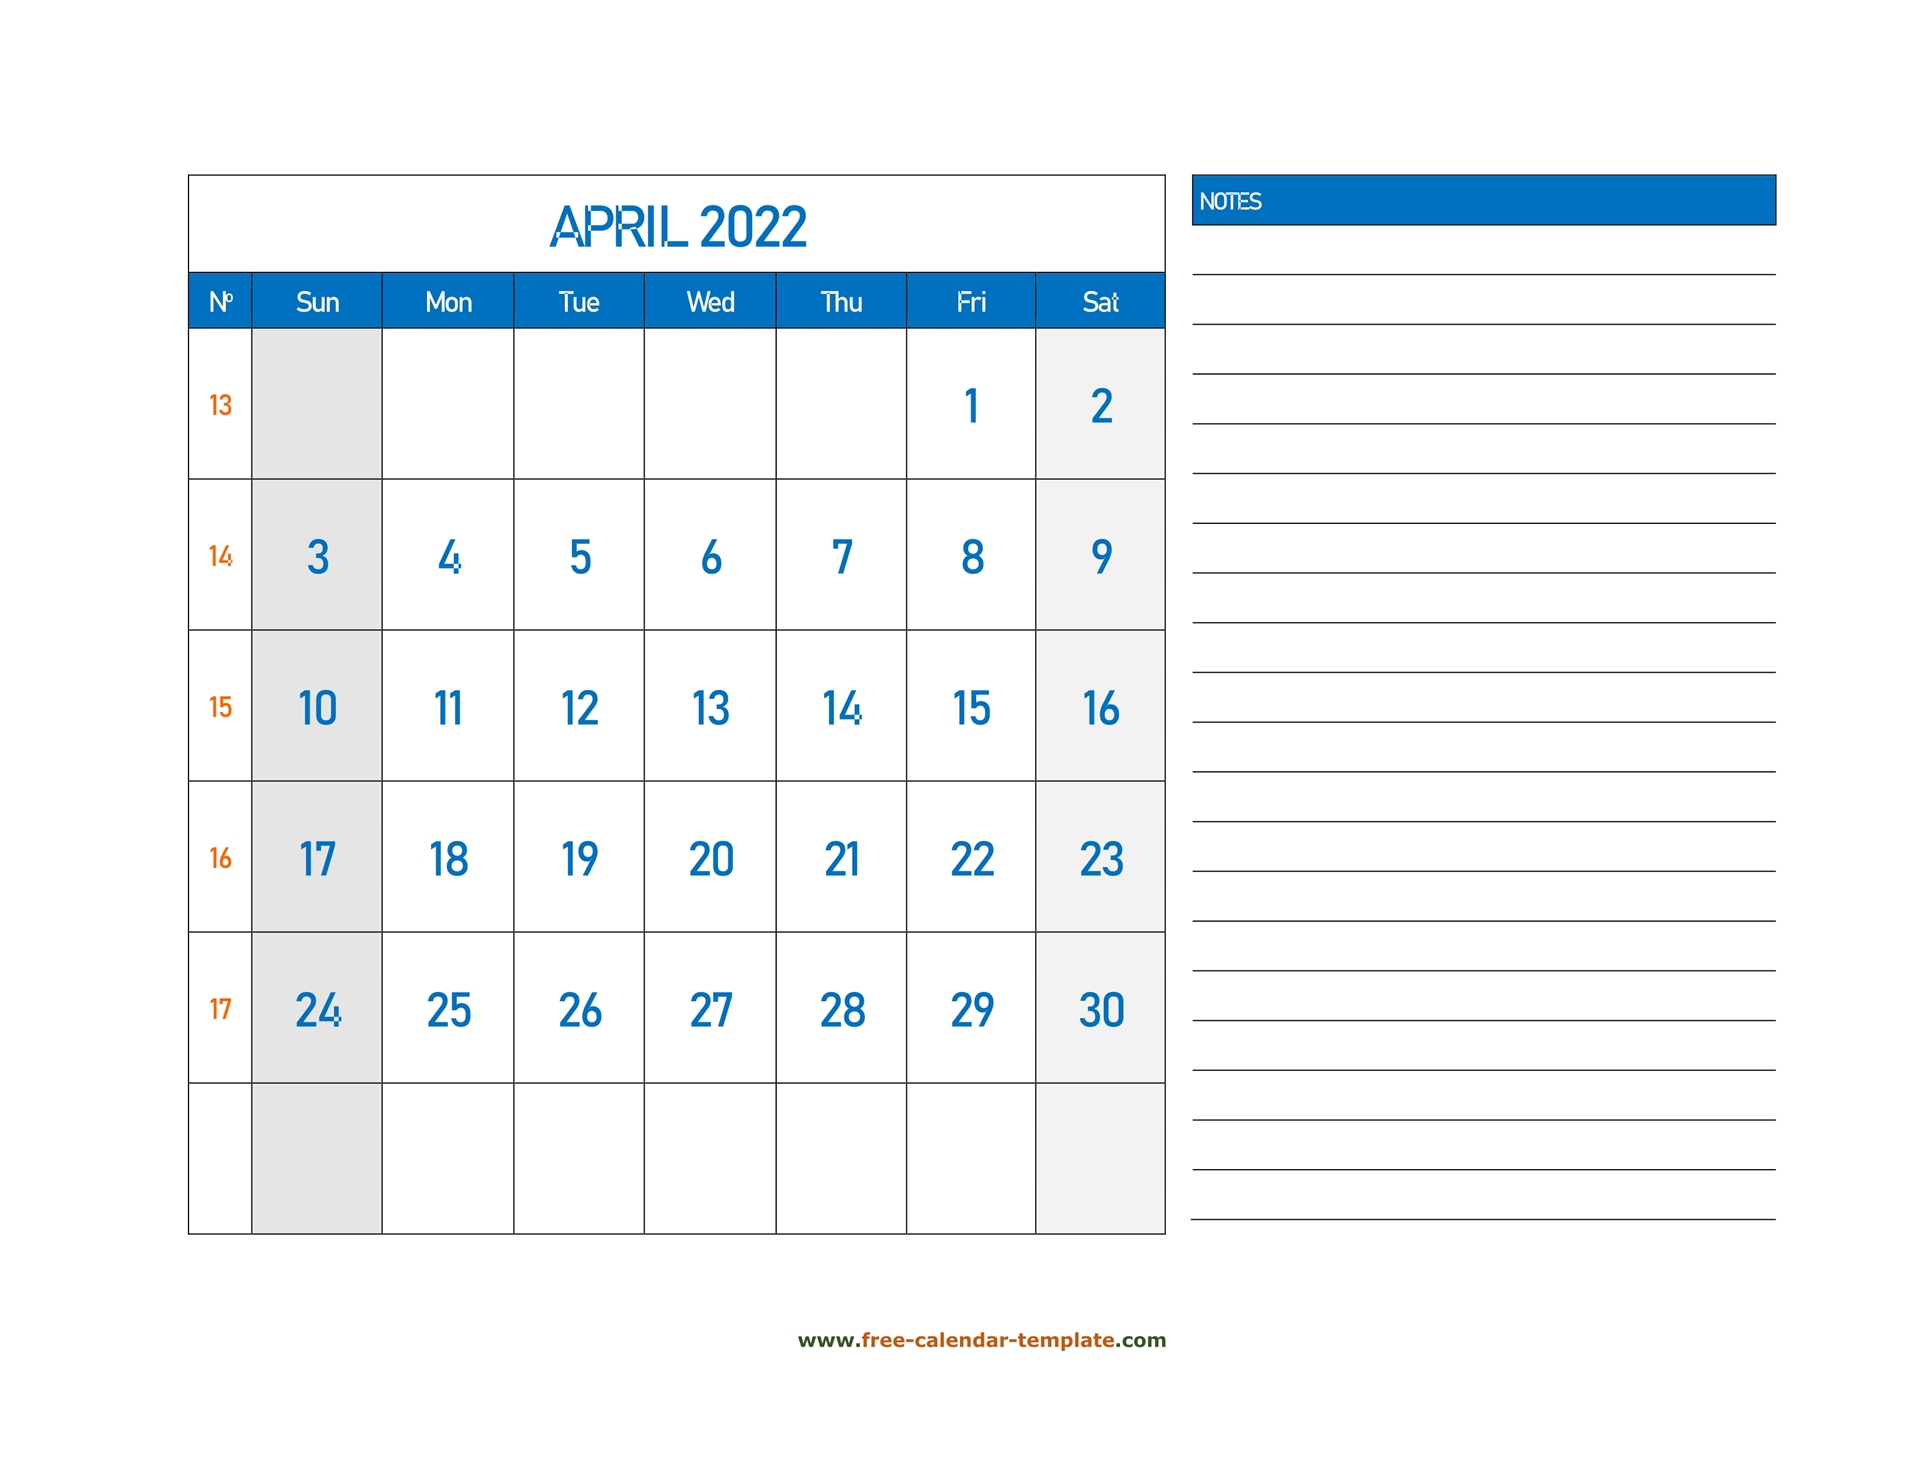 April Calendar 2022 Grid Lines For Holidays And Notes For March April 2022 Calendar Free Printable